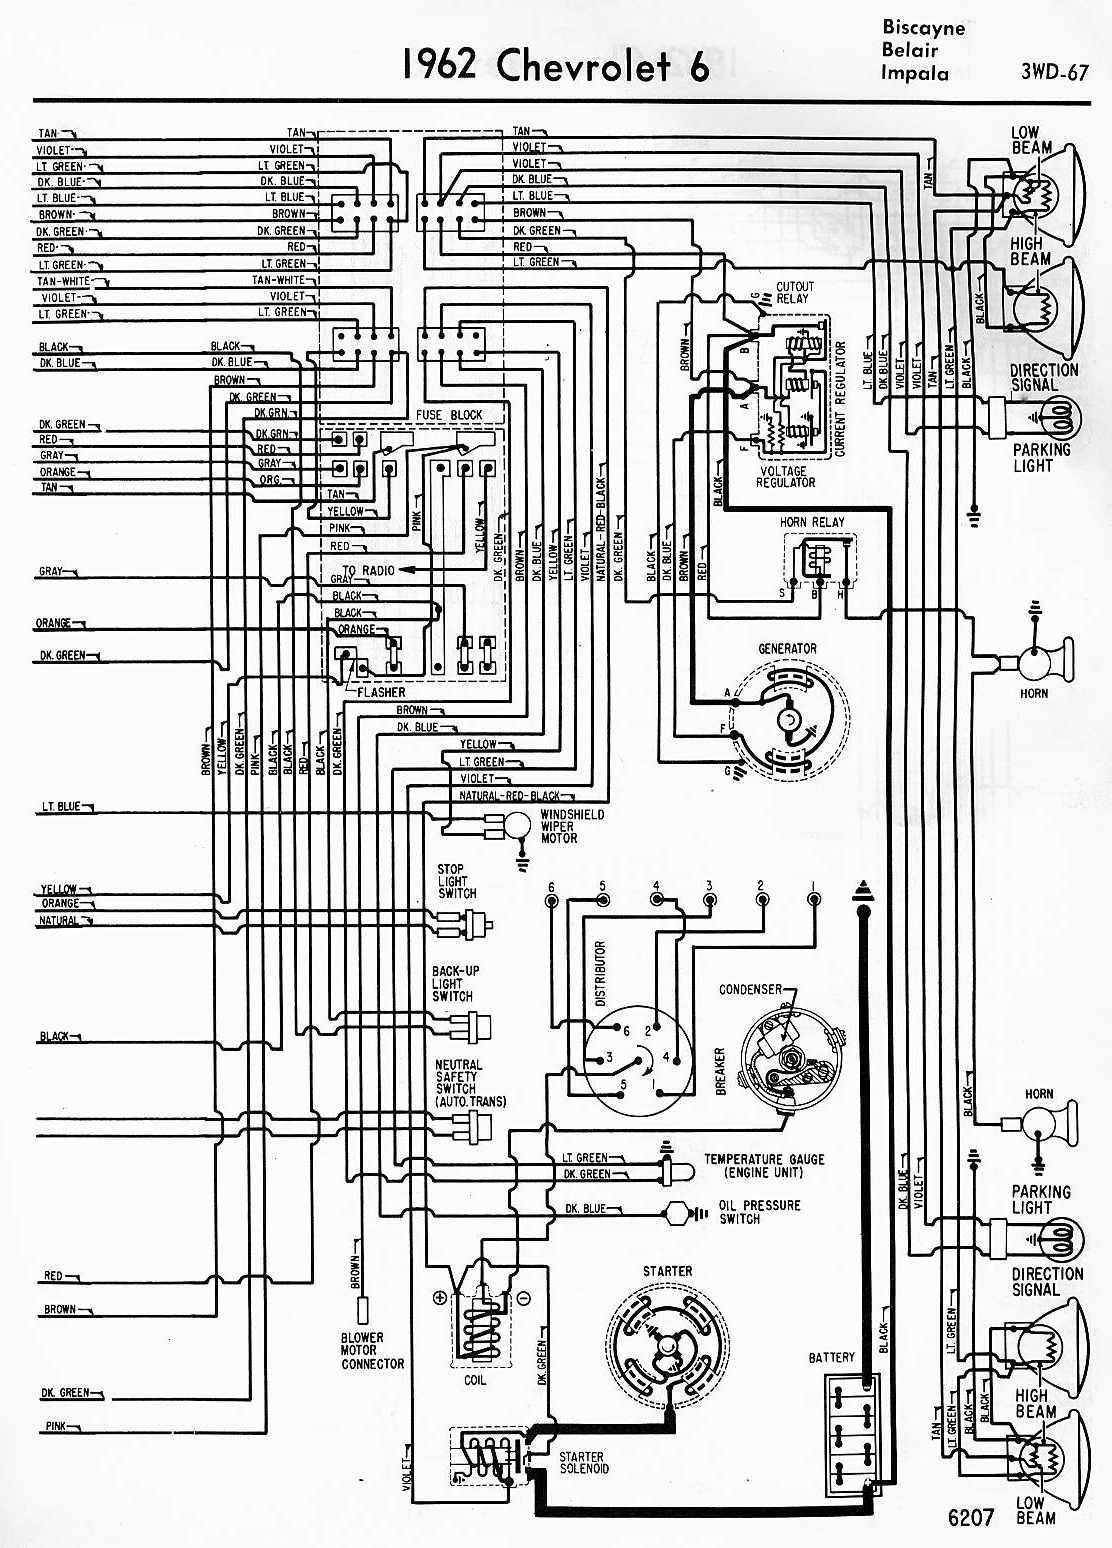 63 chevy truck wiring diagram 2000 gmc sierra 2500 stereo may 2011 | all about diagrams